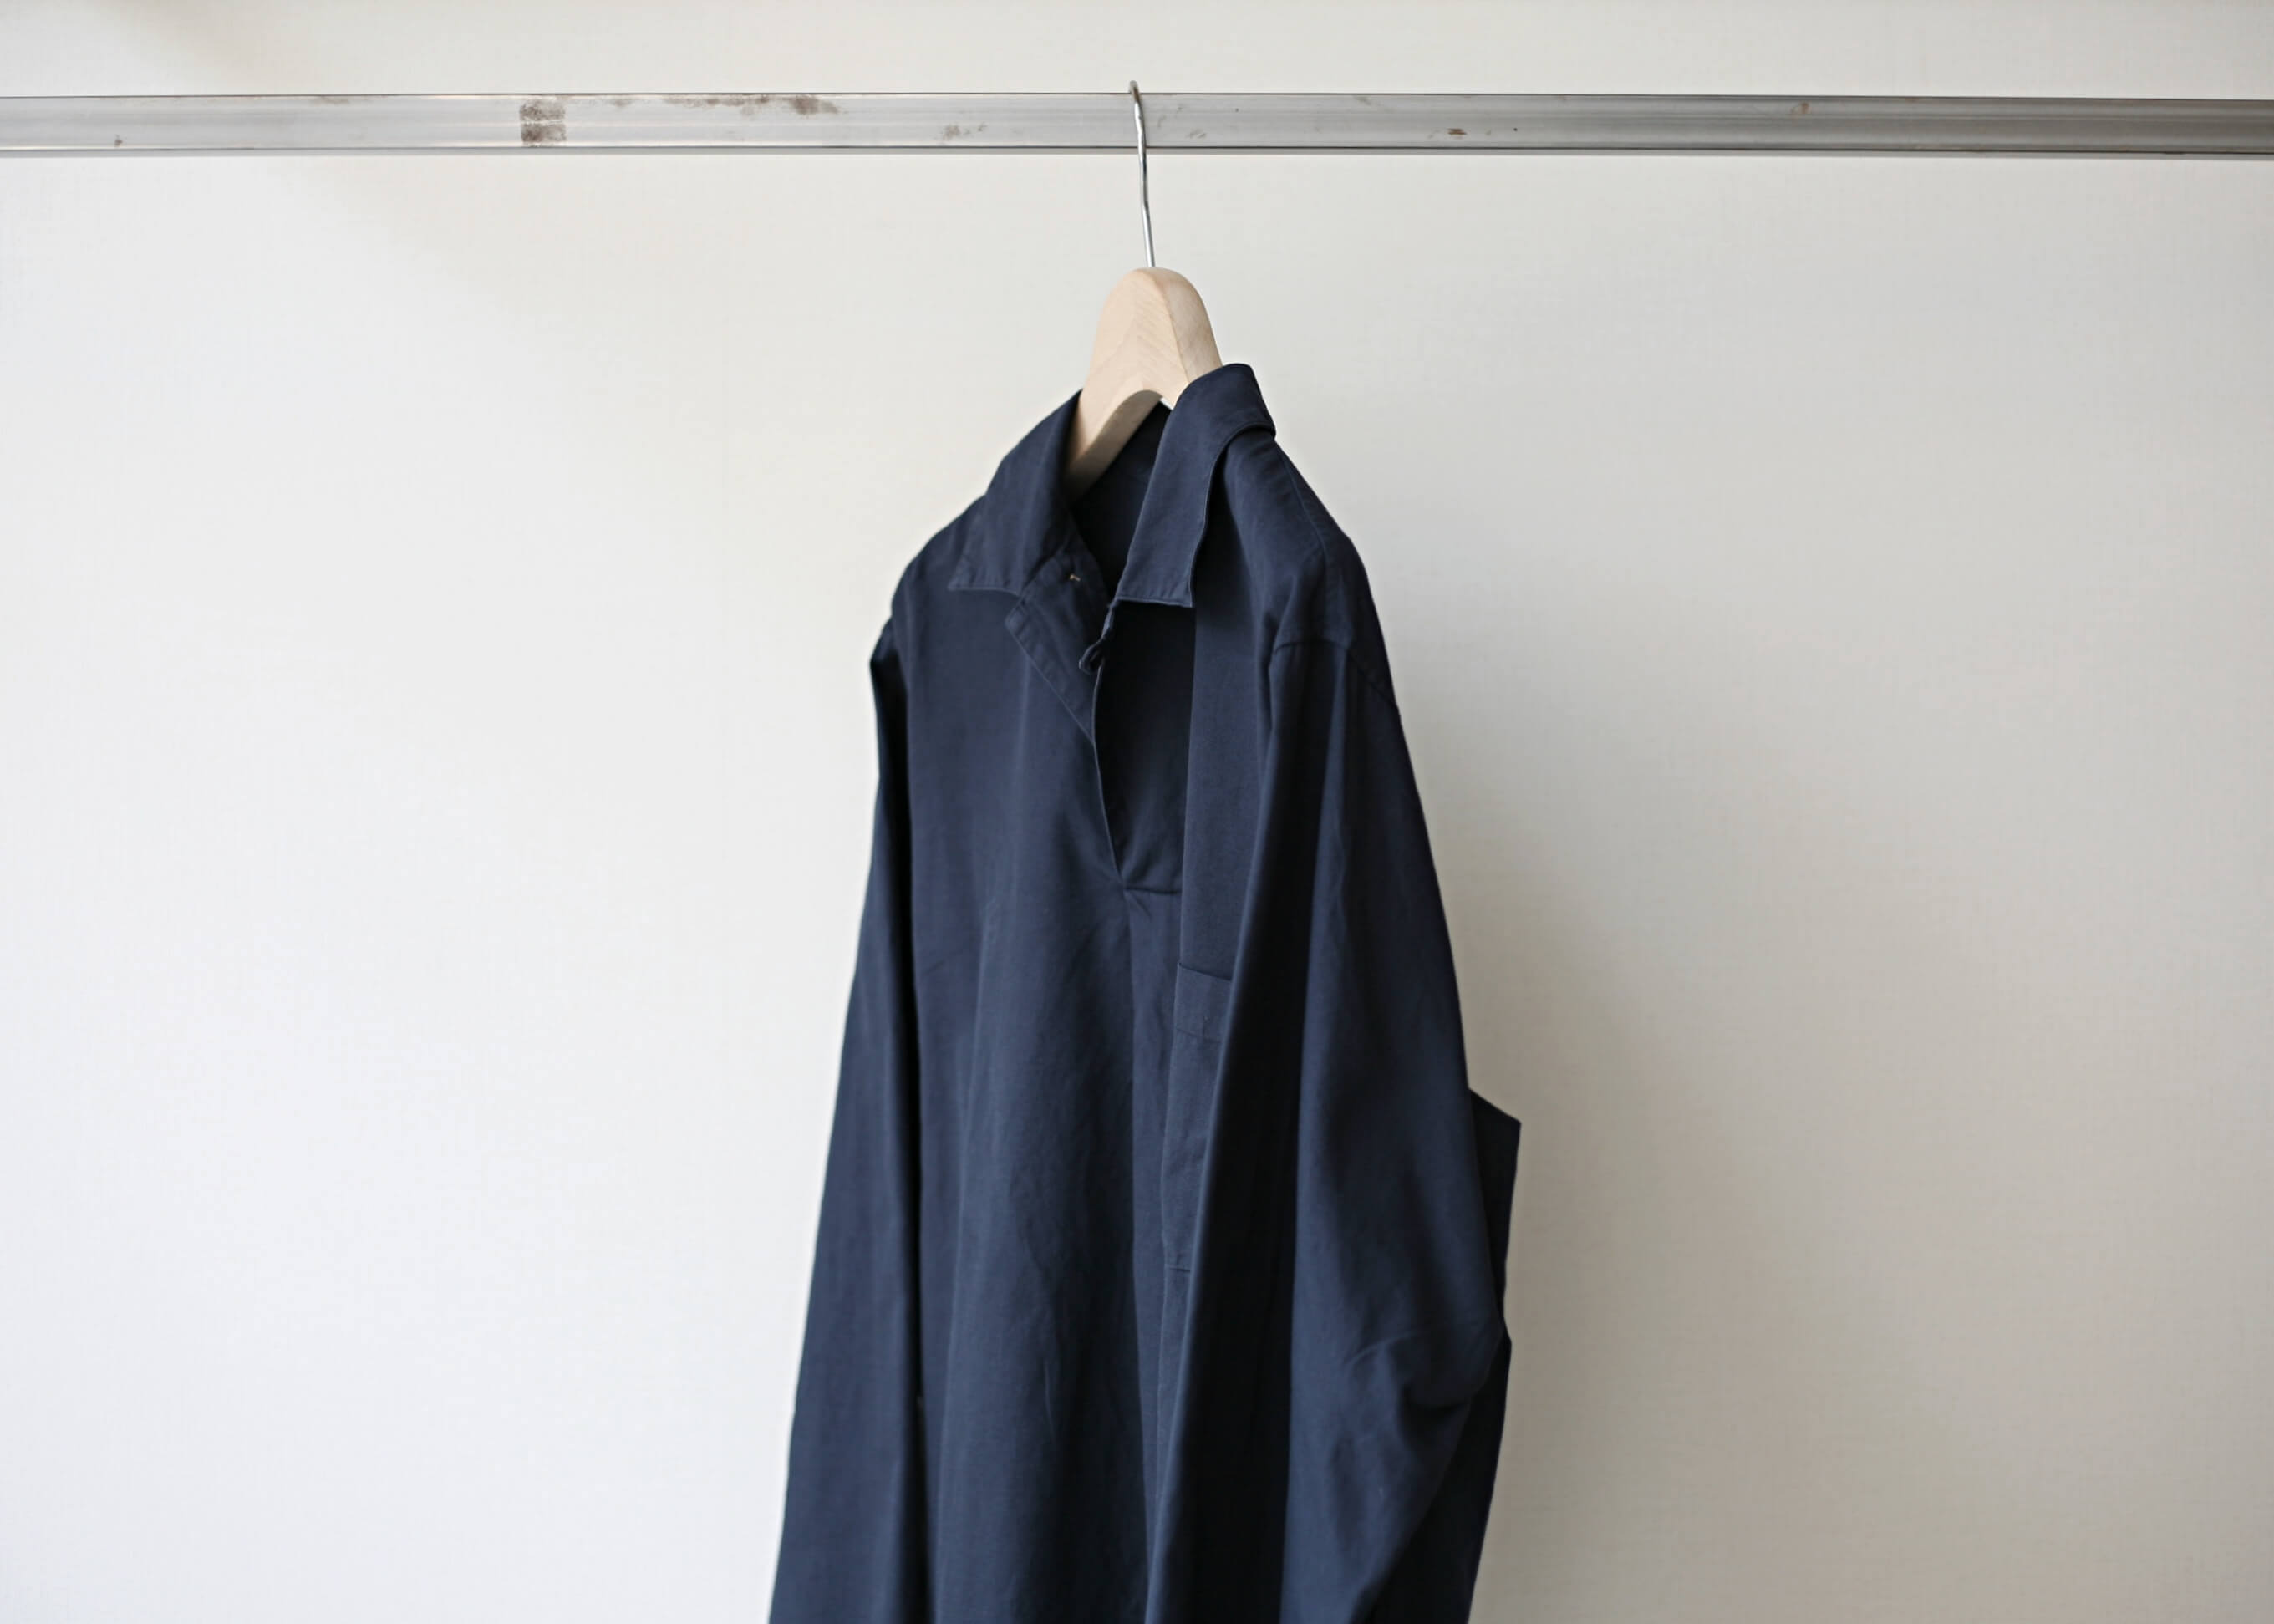 bunt skipper shirts navy 横からの写真